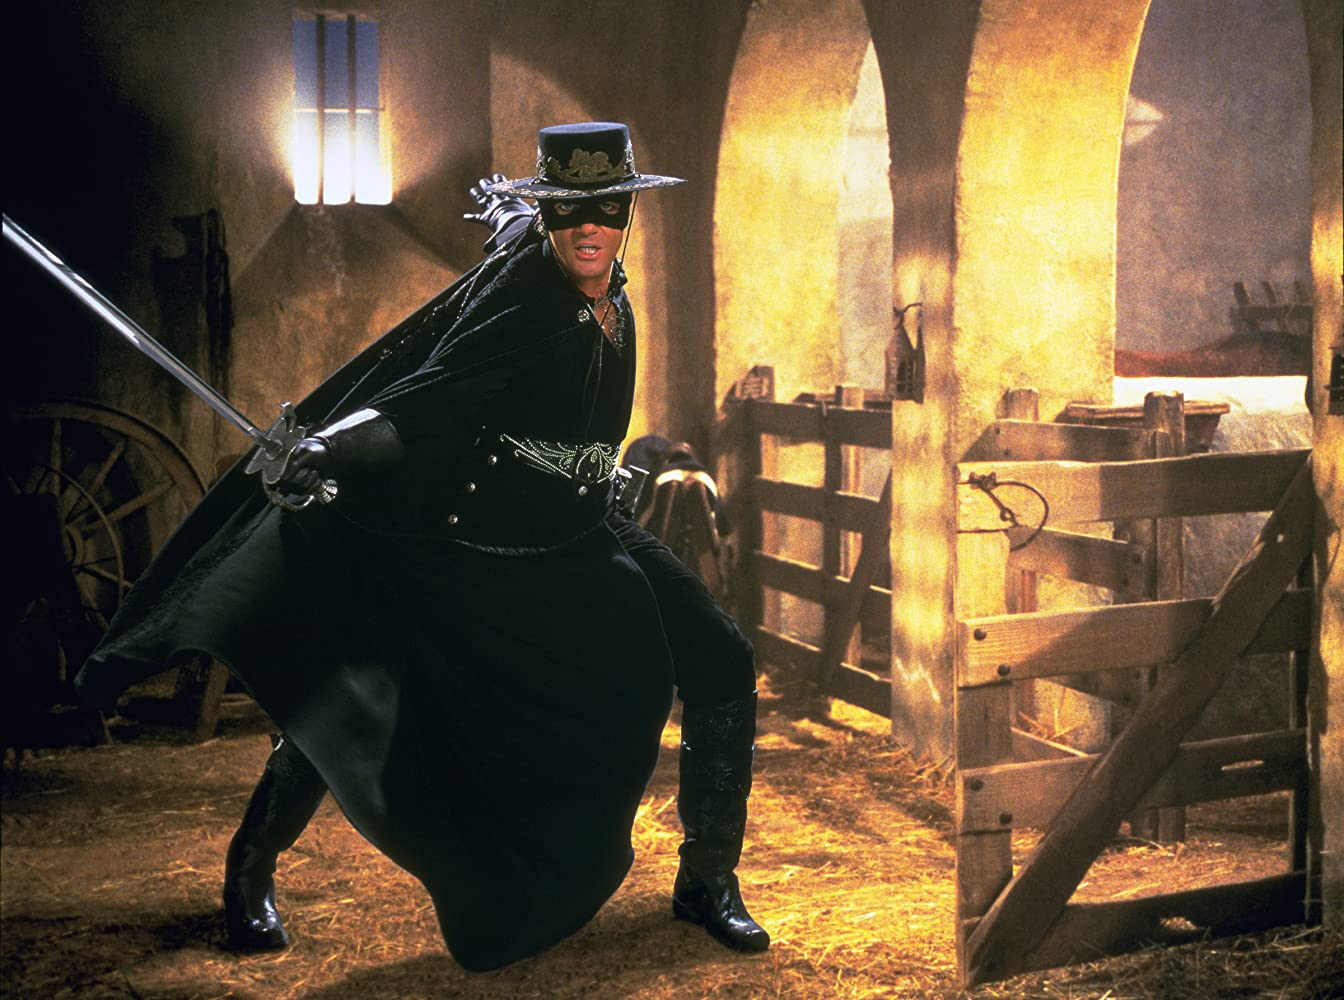 Sinopsis The Mask of Zorro